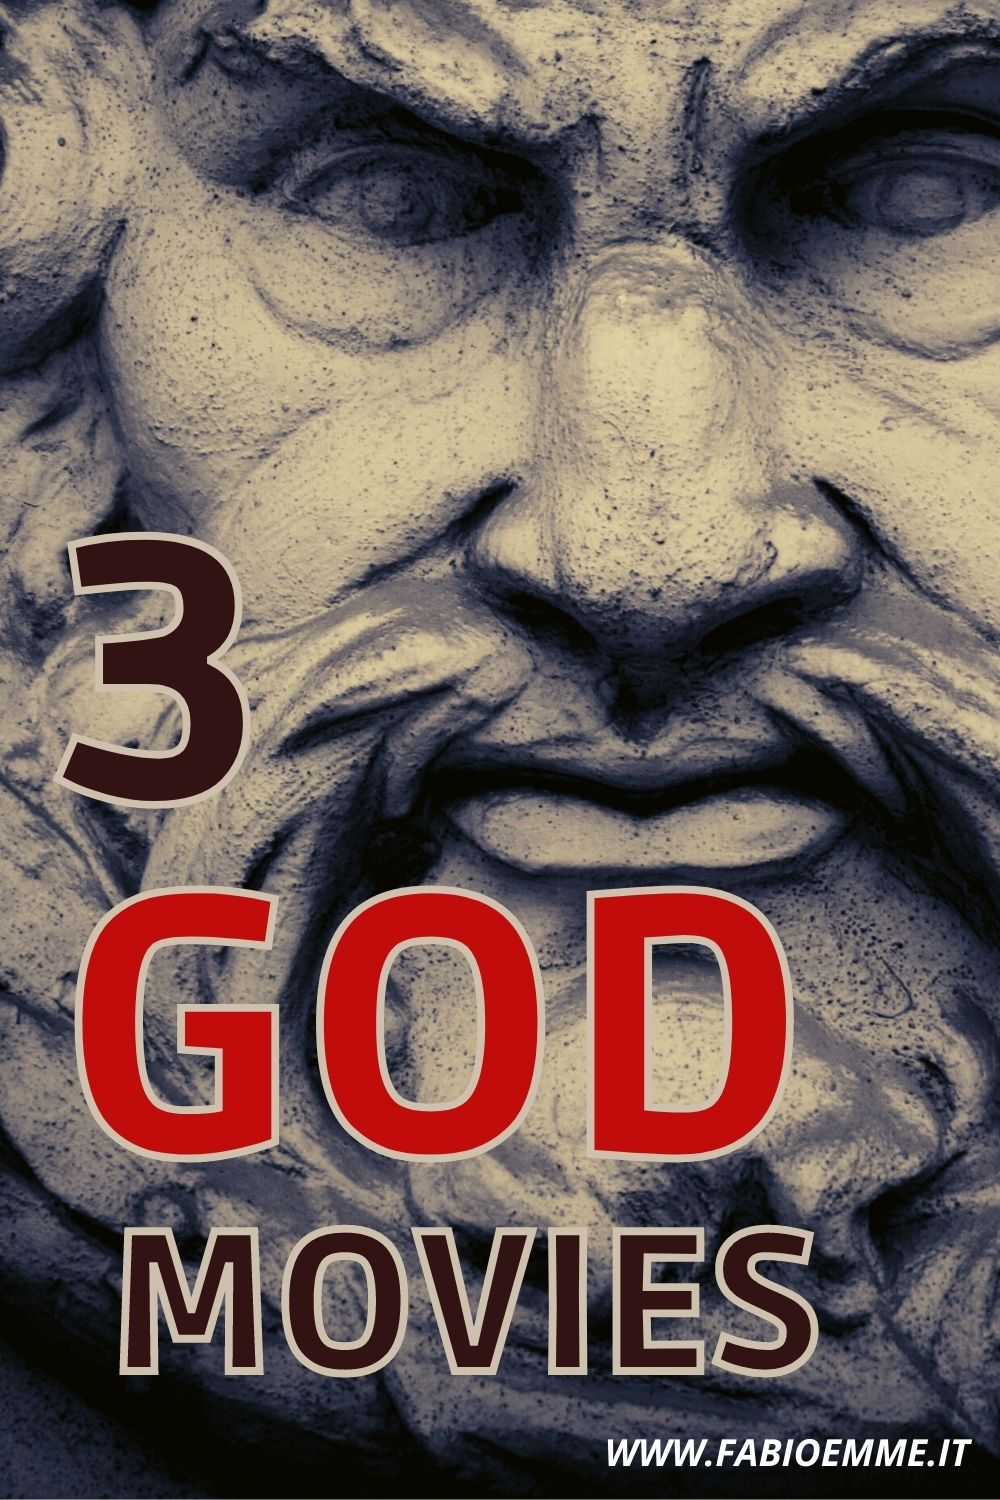 Being made in our gods' image and likeness, we always love to look for stories about them. 3 God Movies that you may have missed. #MOVIES